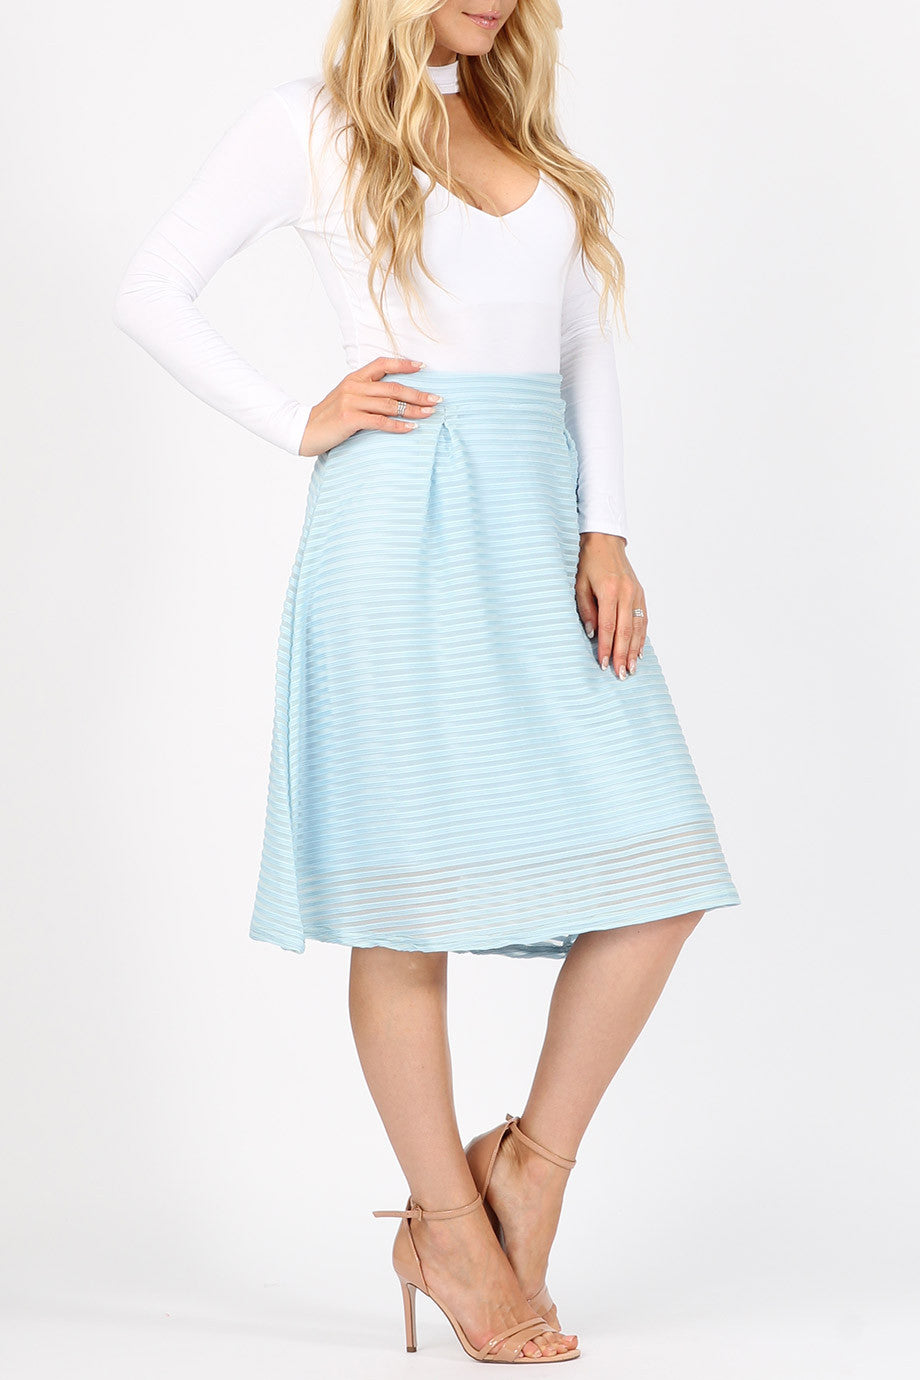 Stripe Mesh Midi Skirt - Blue